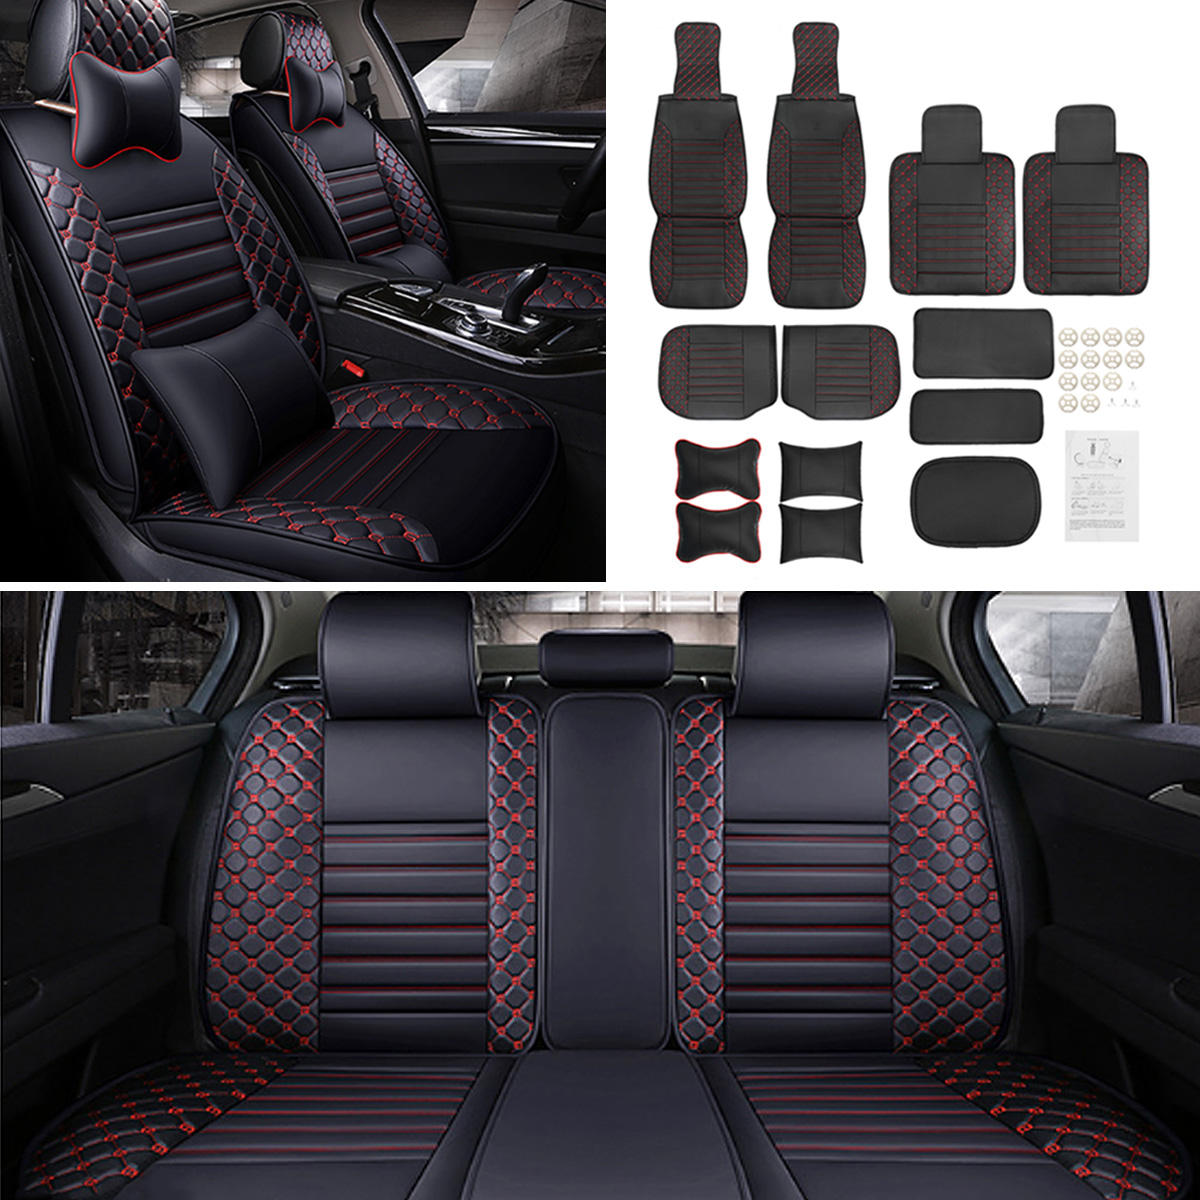 Washable Breathable 9 Part Red/&Black Color Car Seat Covers Protect Set Universal